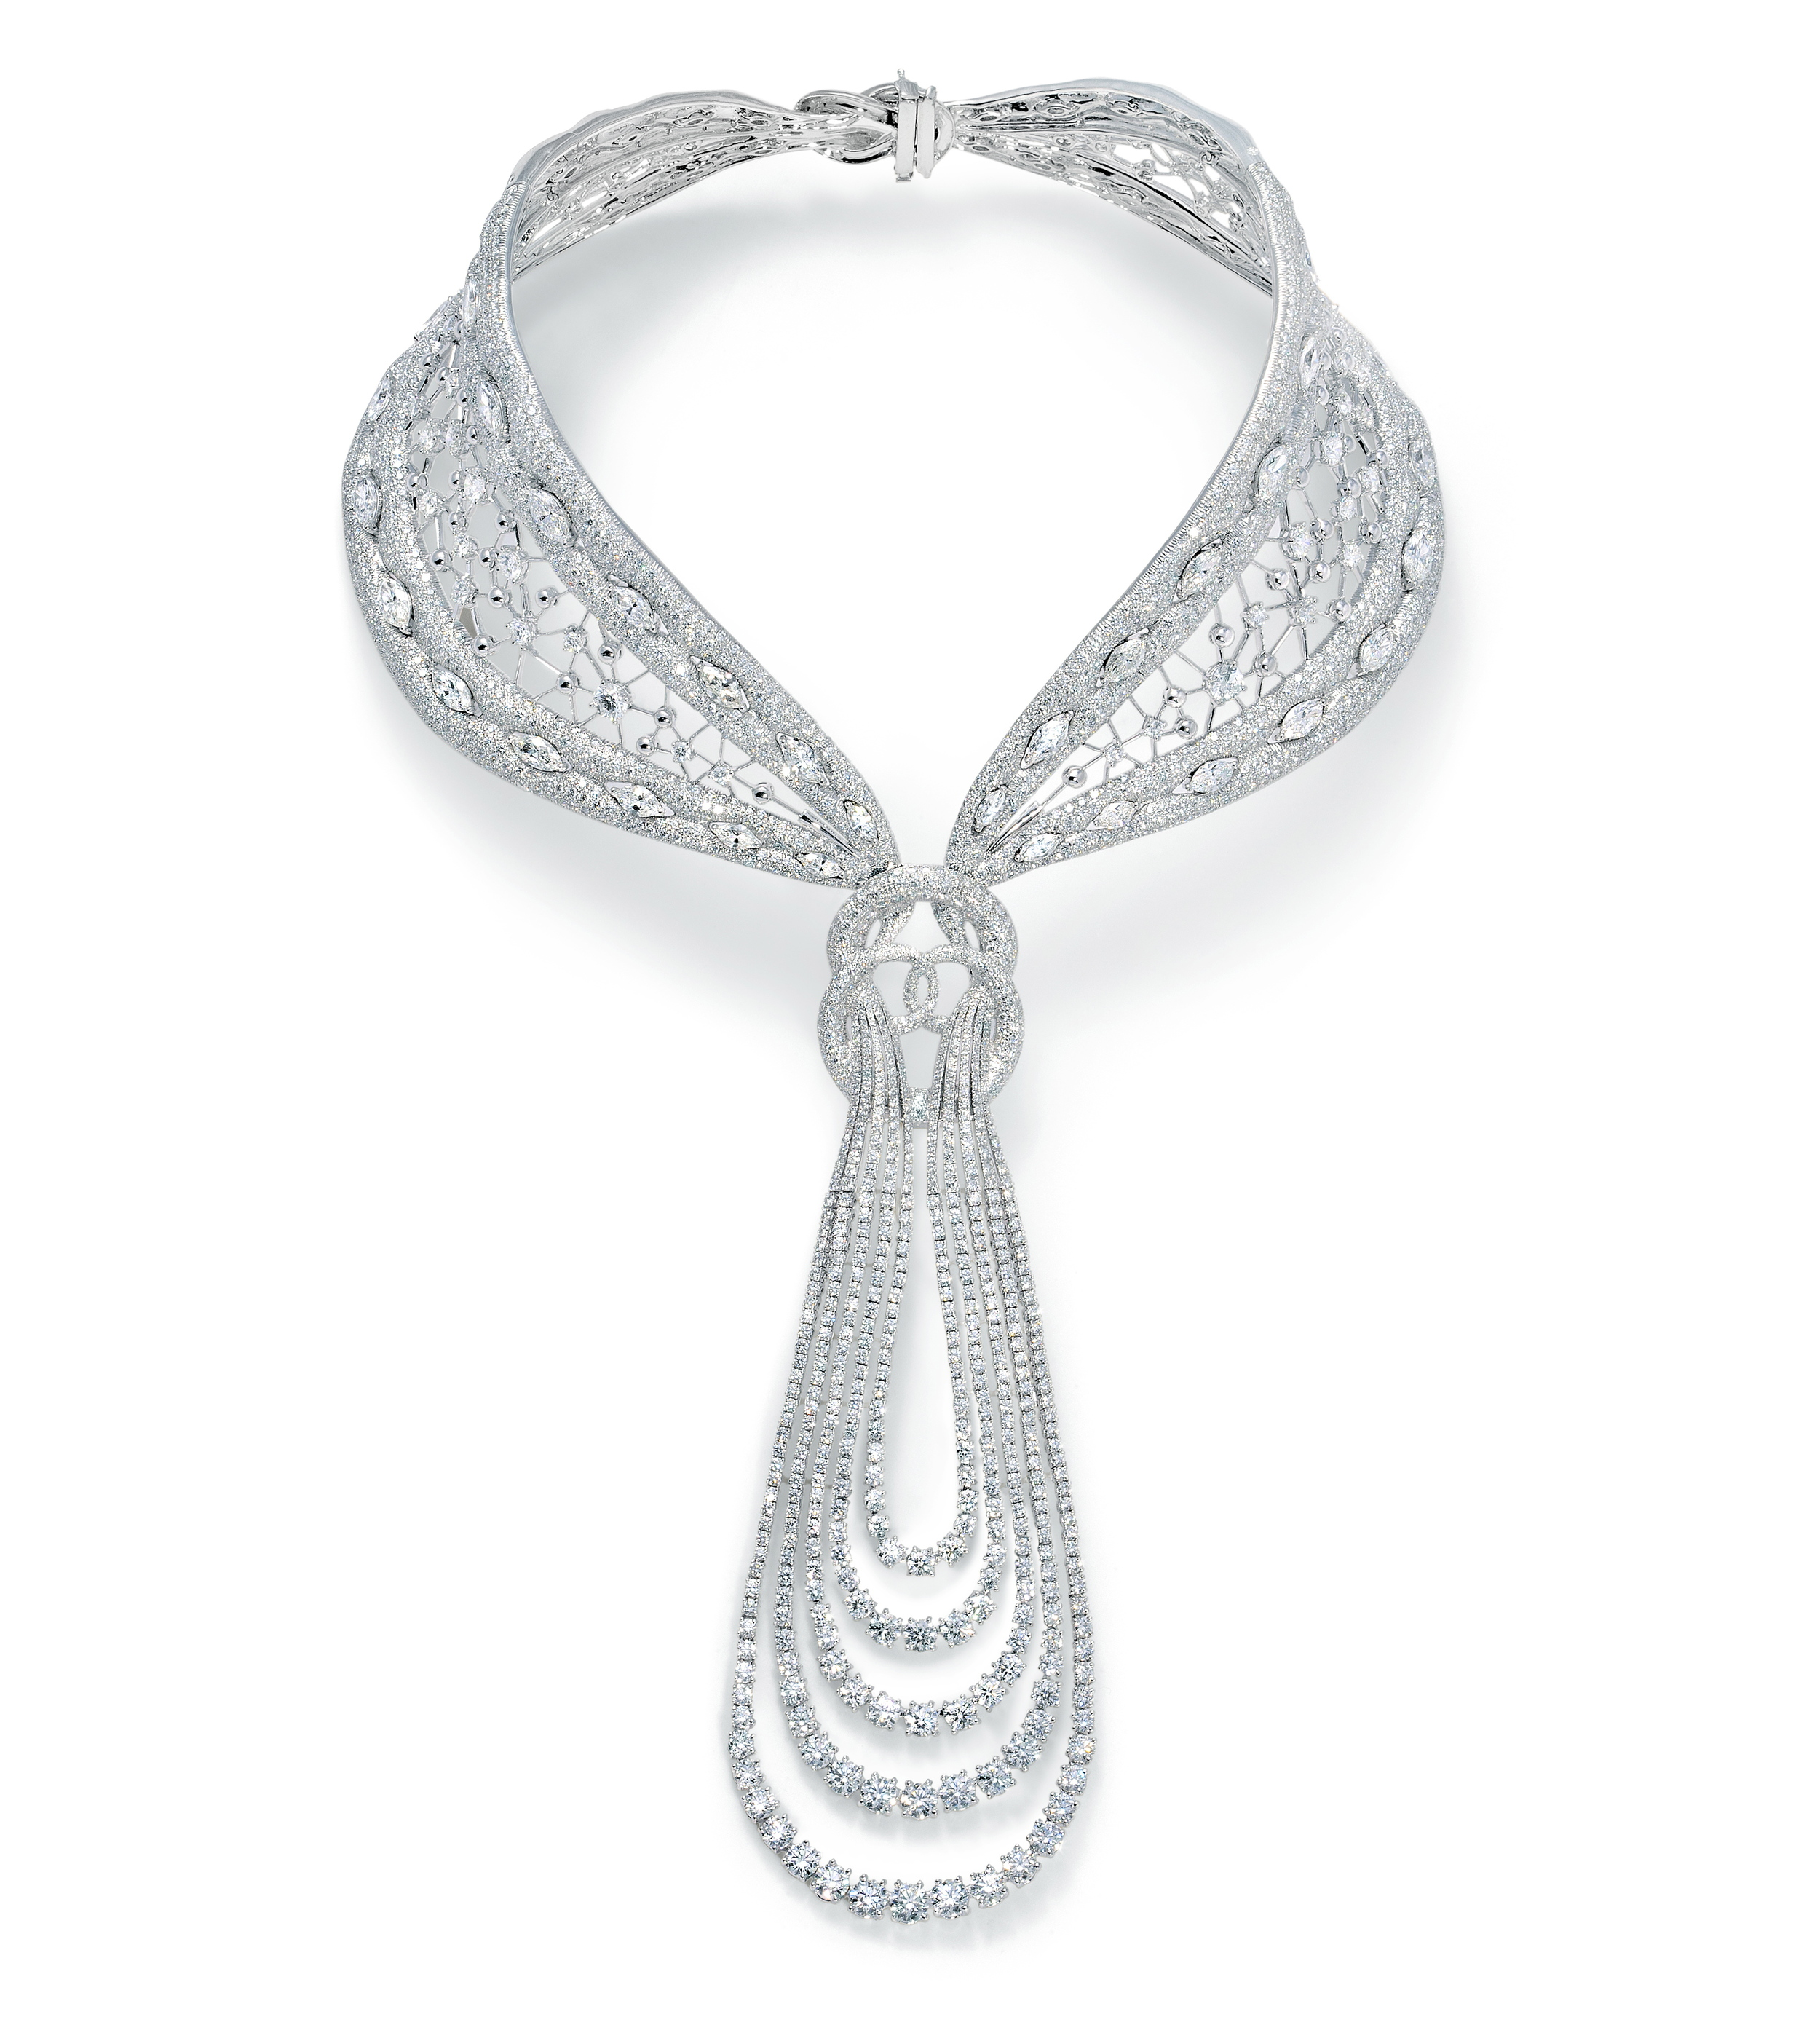 Reena Ahluwalia_Forevermark Promise_Eternal Diamond Necklace1.jpg